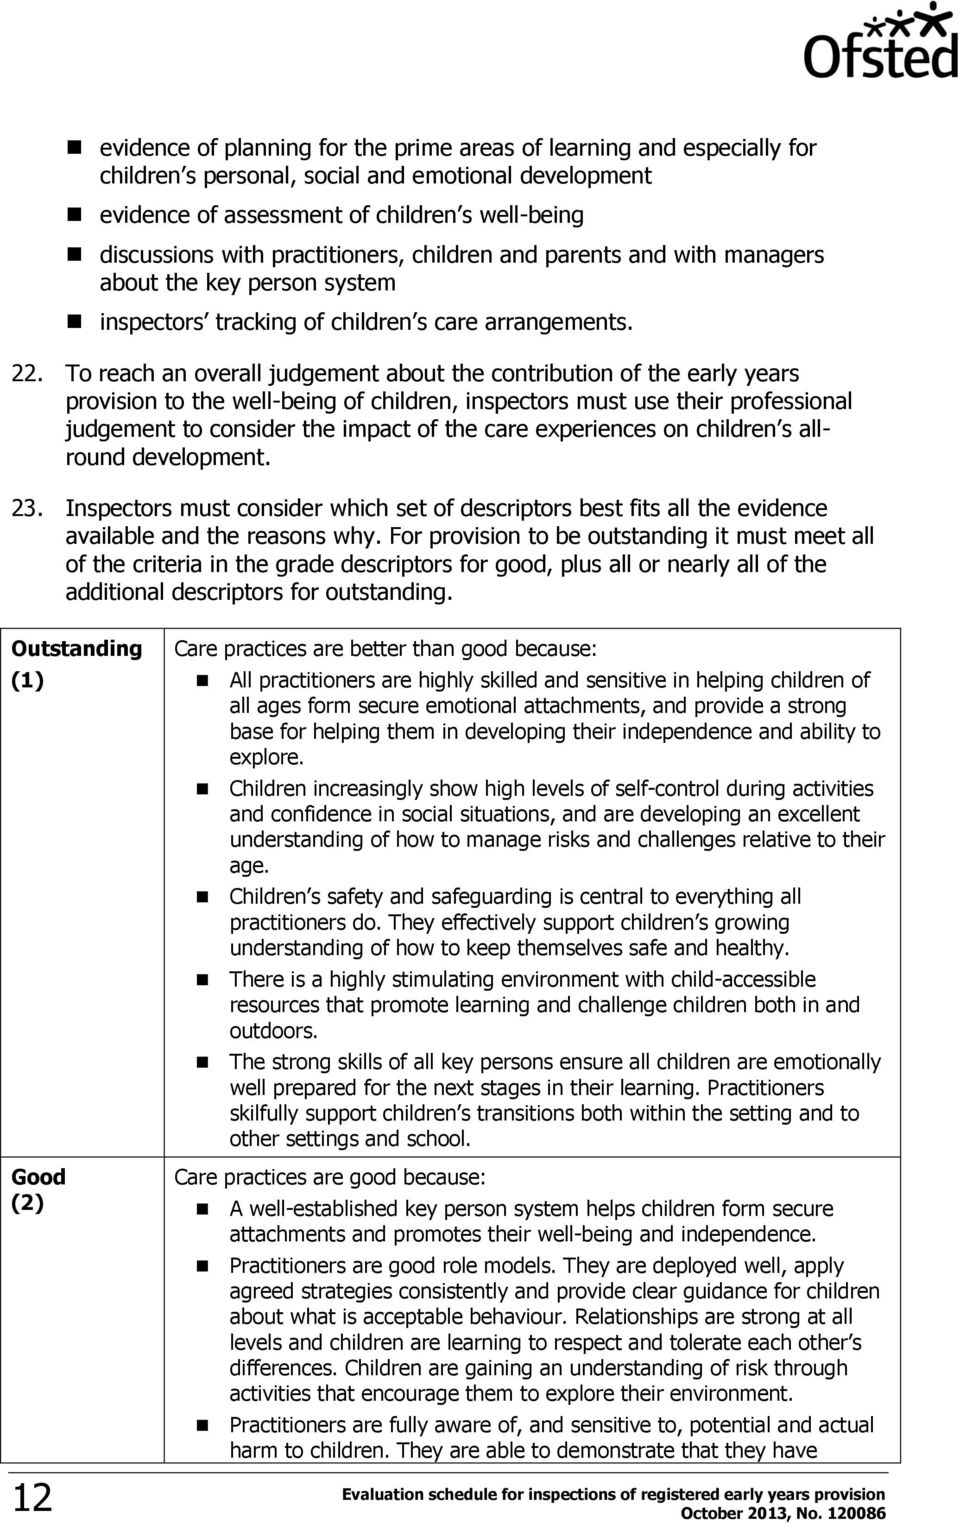 To reach an overall judgement about the contribution of the early years provision to the well-being of children, inspectors must use their professional judgement to consider the impact of the care